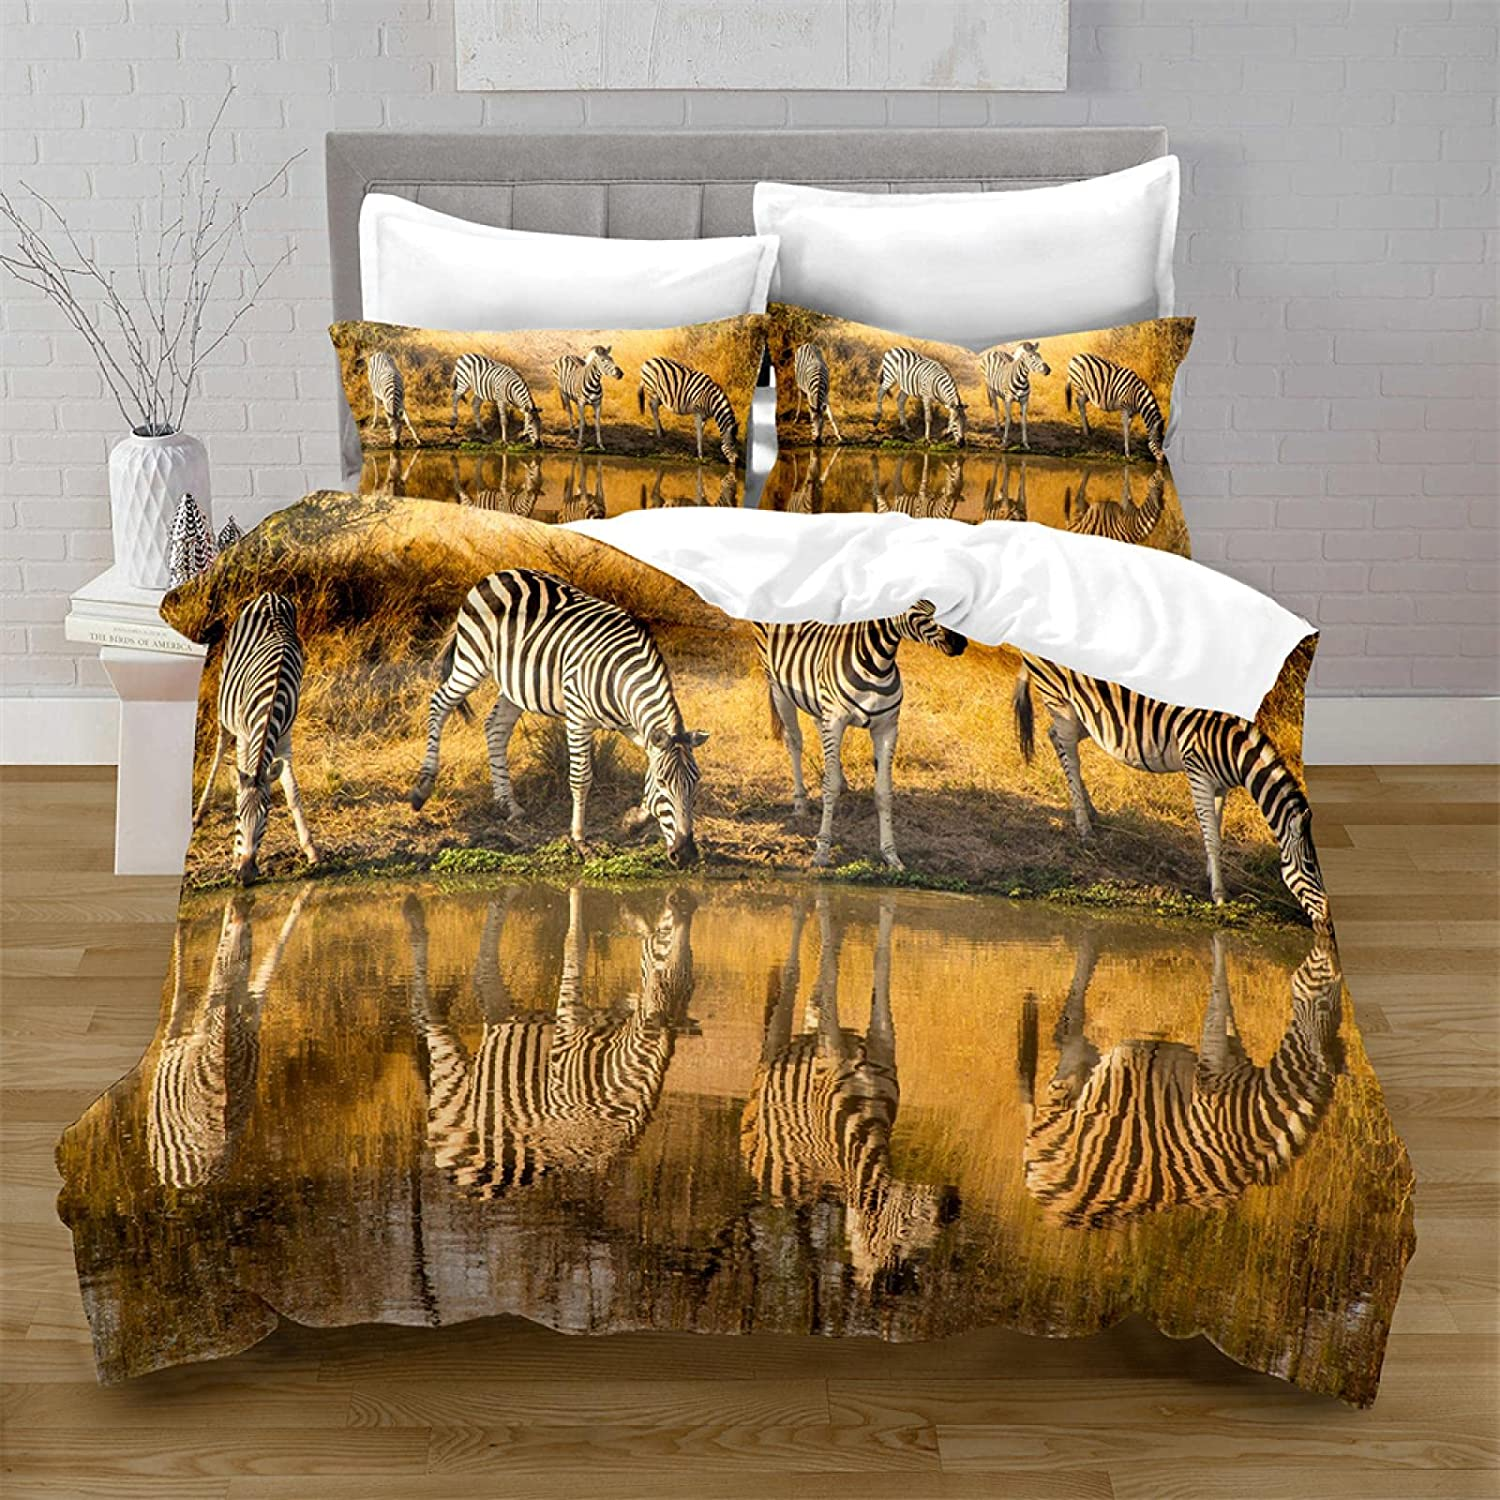 HQHM Duvet Cover King 3 Pieces Zebra Animals Manufacturer direct Popular product delivery Yellow Forest 79X79